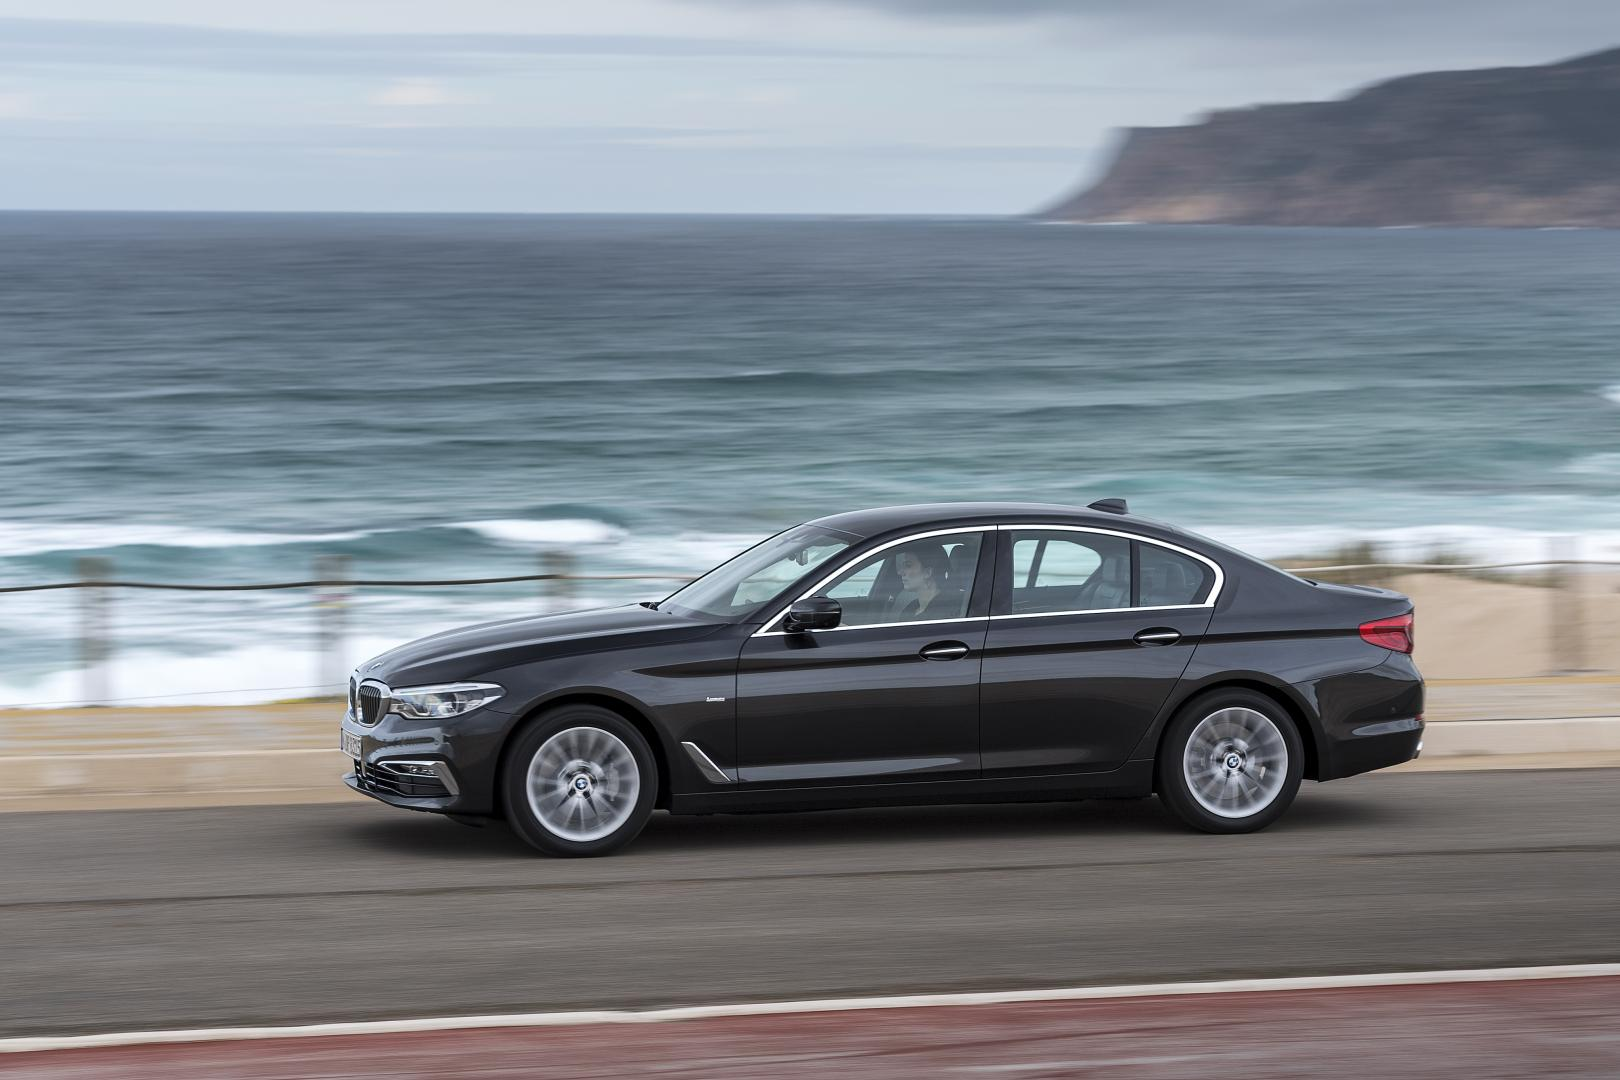 bmw-530d-xdrive-luxery-drive-test-2017